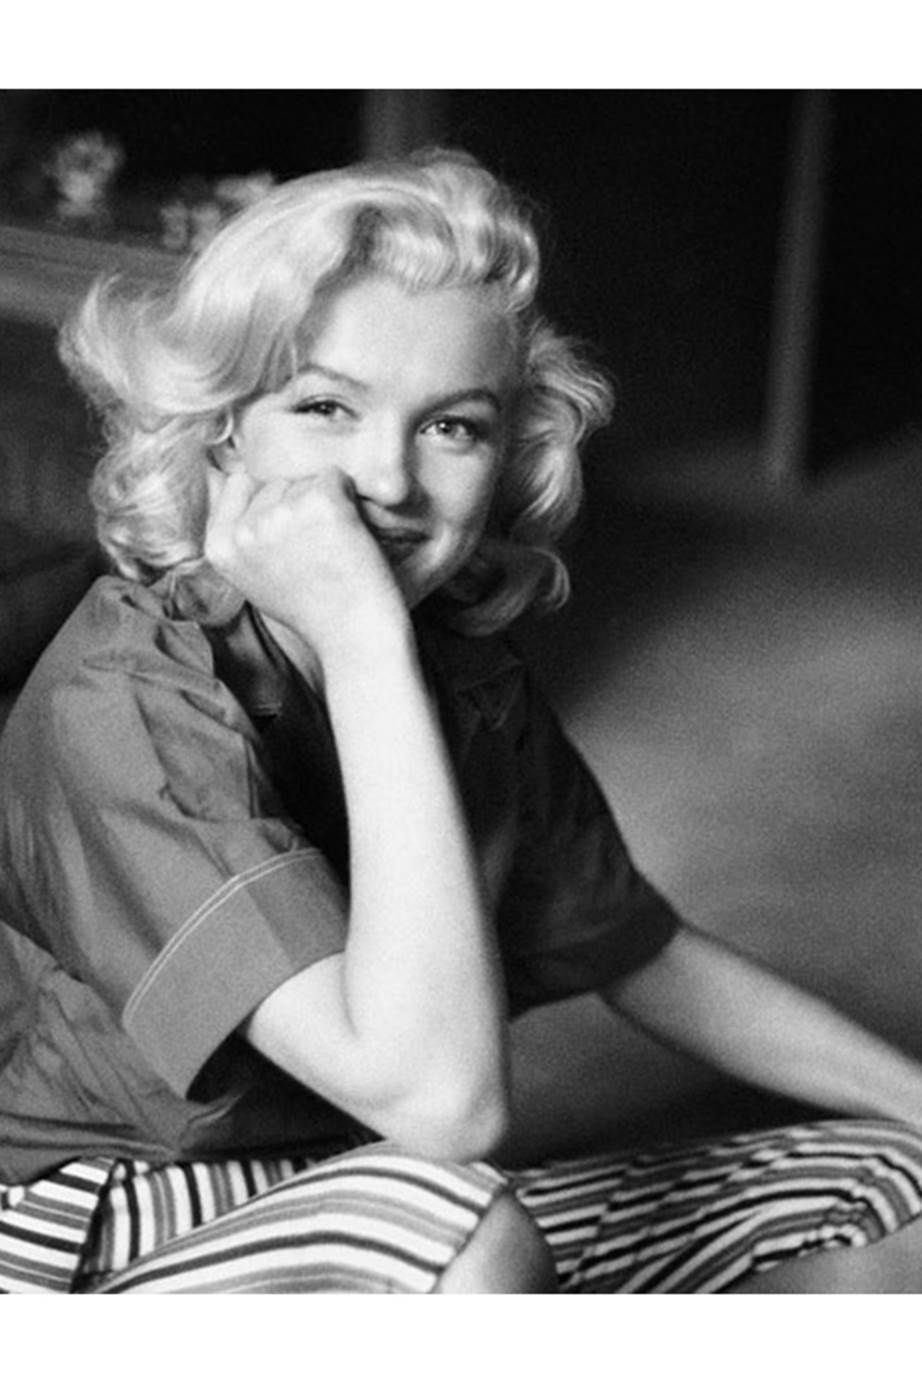 Pin by Holly on Marilyn Monroe in 2020 Couple aesthetic